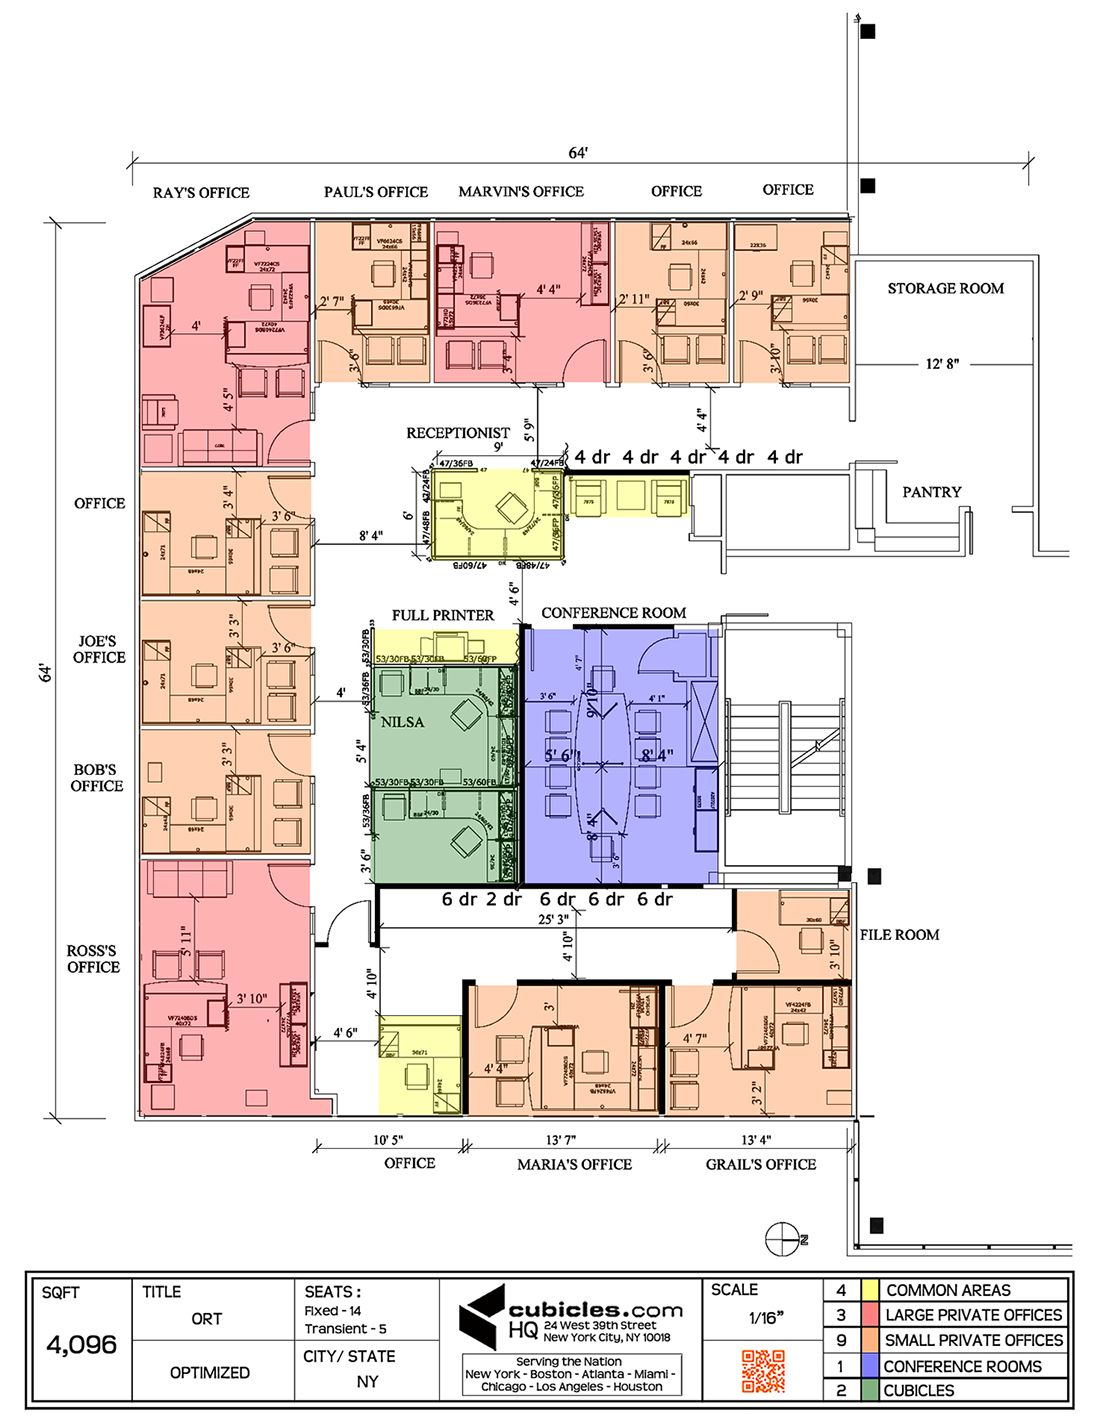 Office layout Plan for a G shaped office building. #officelayout